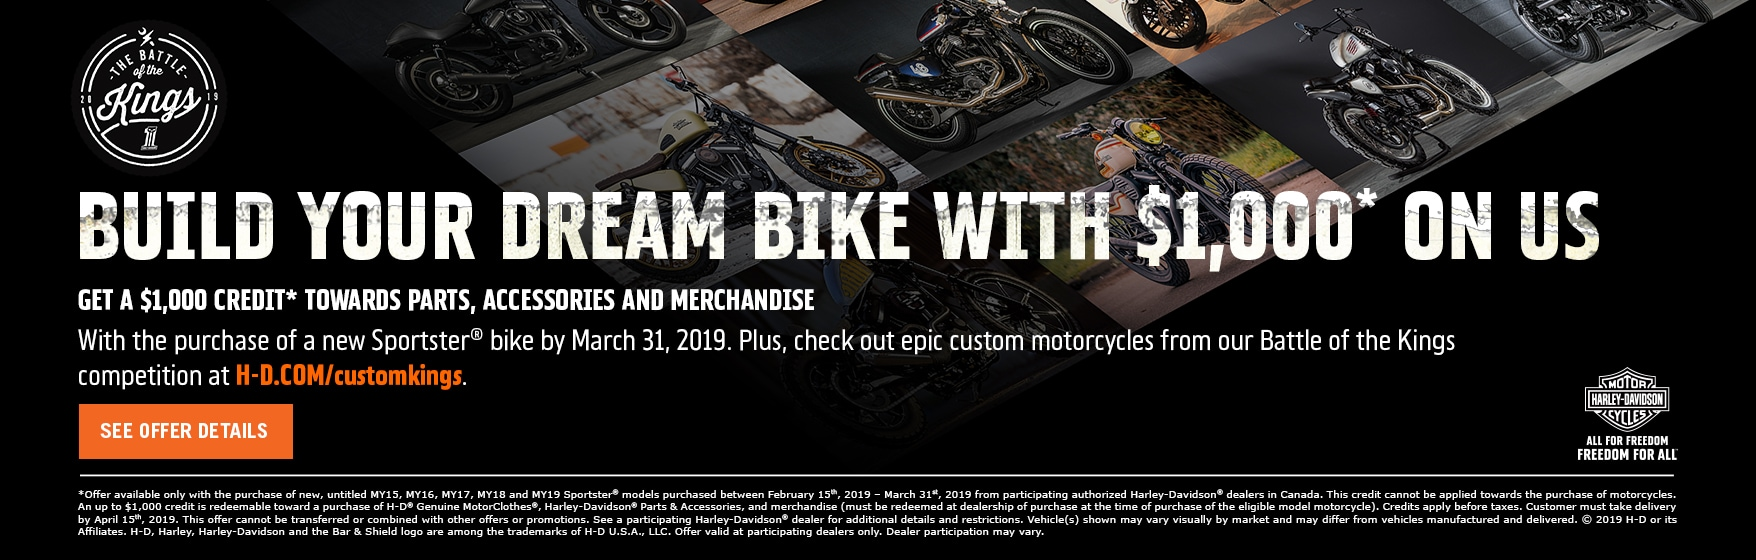 Build Your Dream Bike with $1000.00 on us!